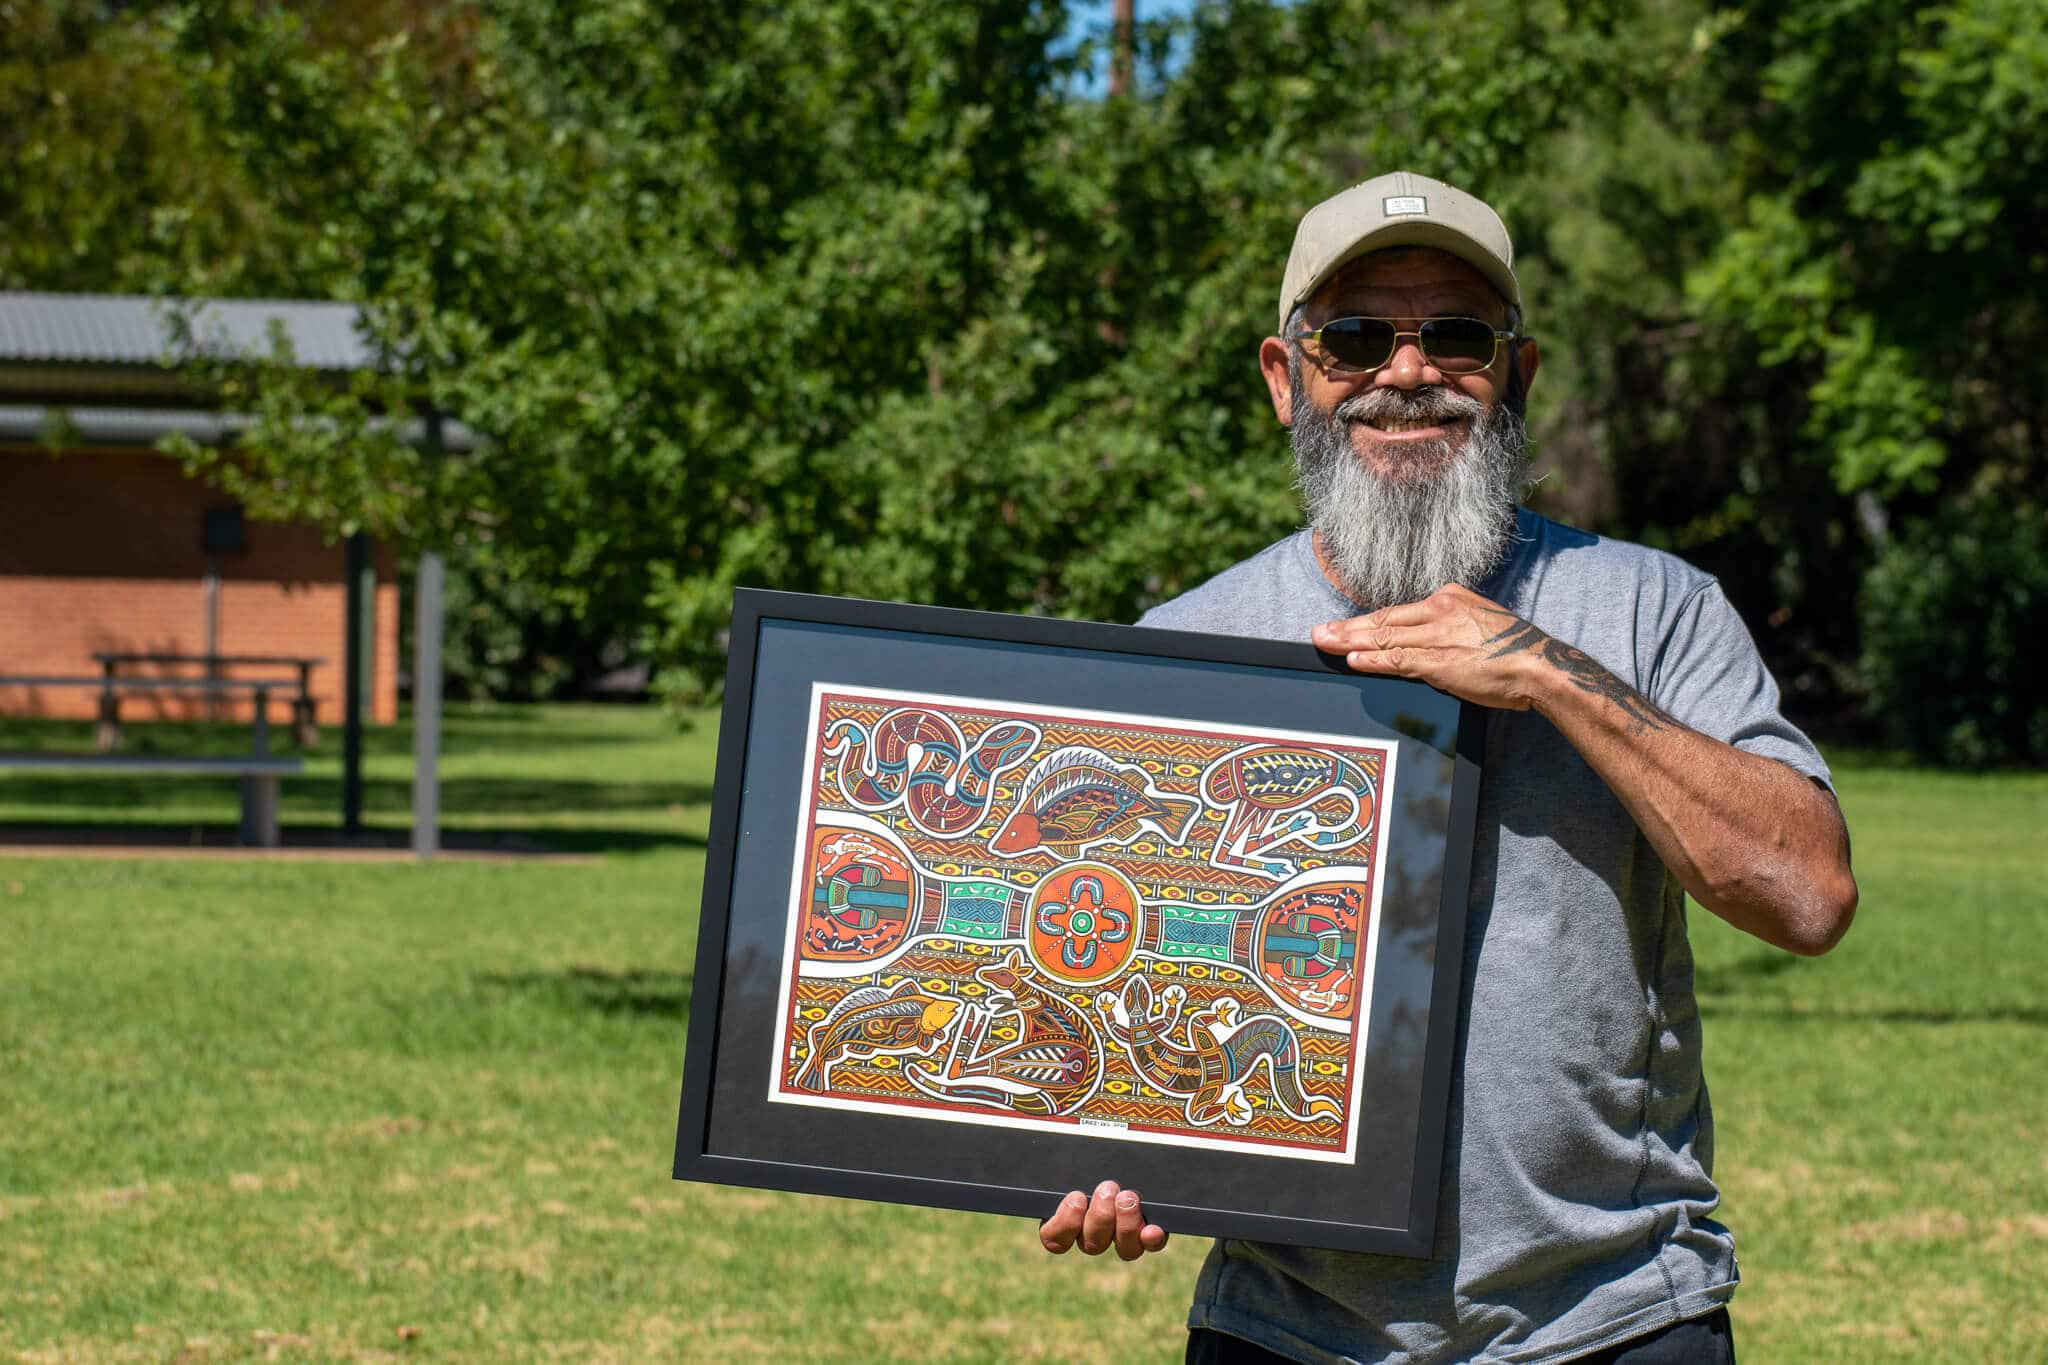 Wiradjuri Artist holding his finished artwork in a park